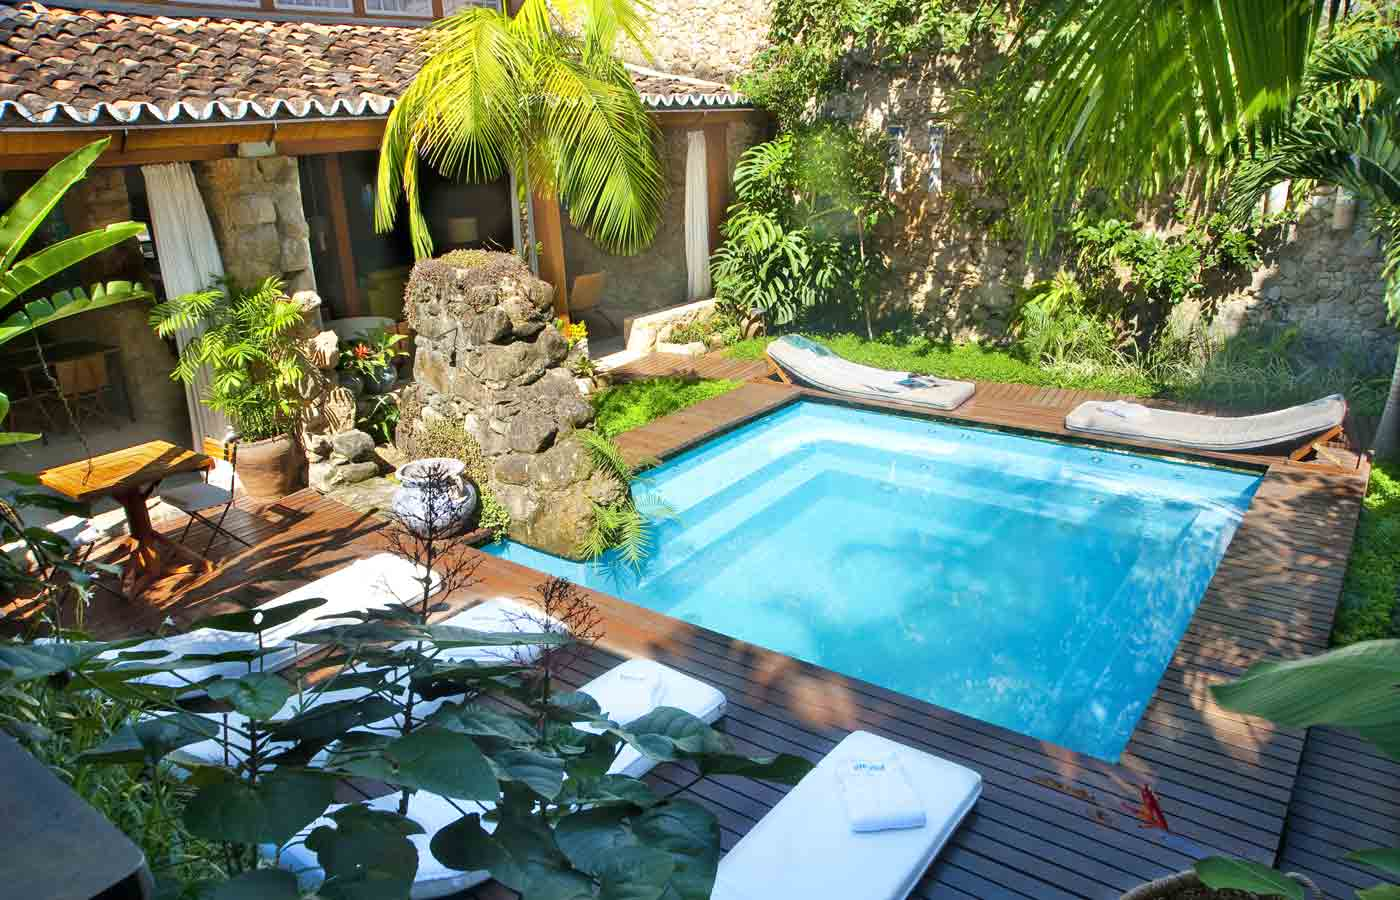 Casa Turquesa - Luxury holidays to Paraty, Brazil